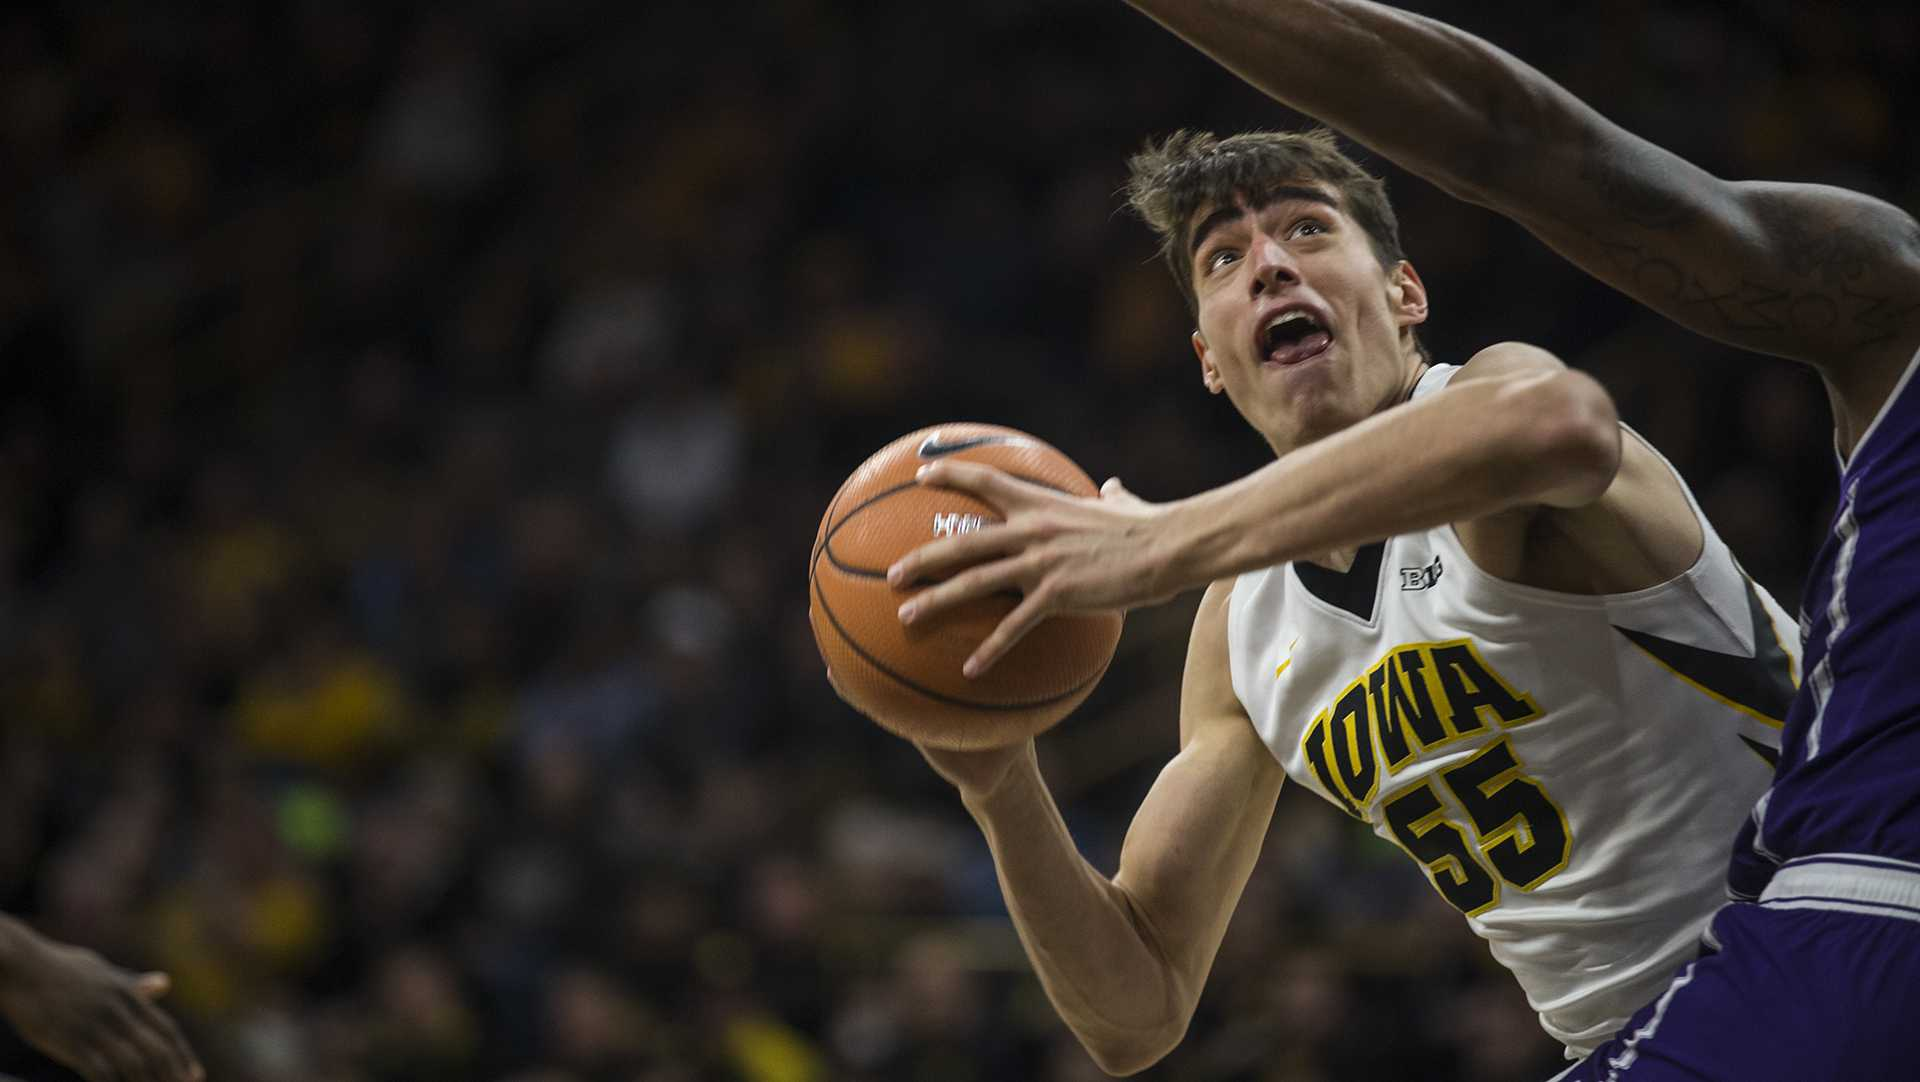 Hawkeyes down Illinois in Big Ten Tournament, look to Michigan